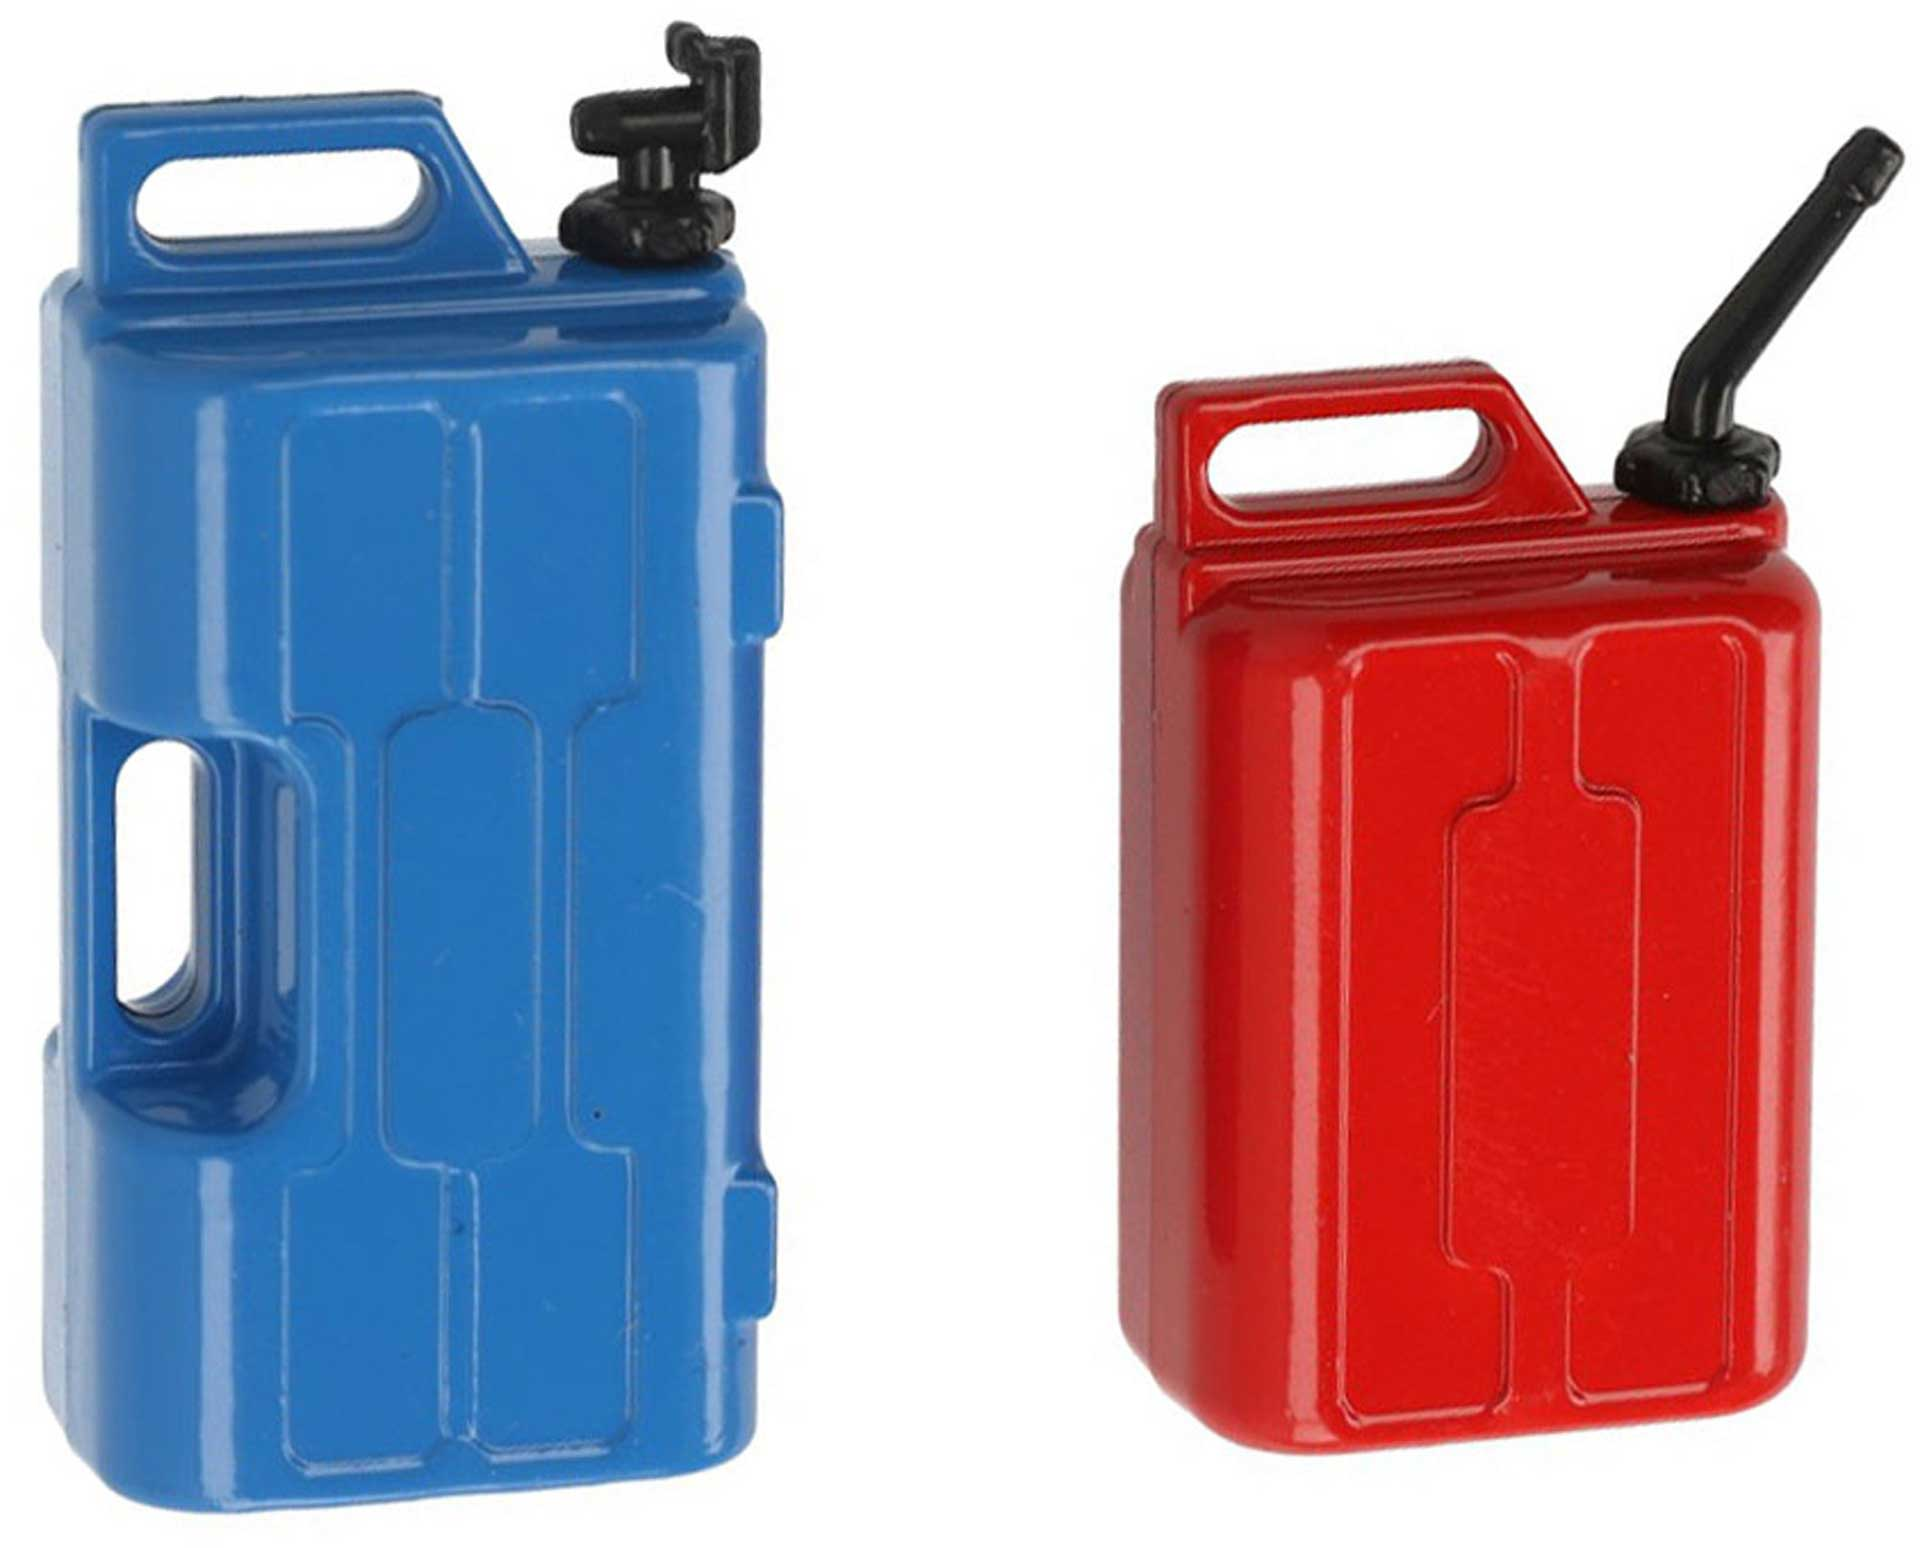 ROBITRONIC Petrol canister and water canister Decoration set blue/red